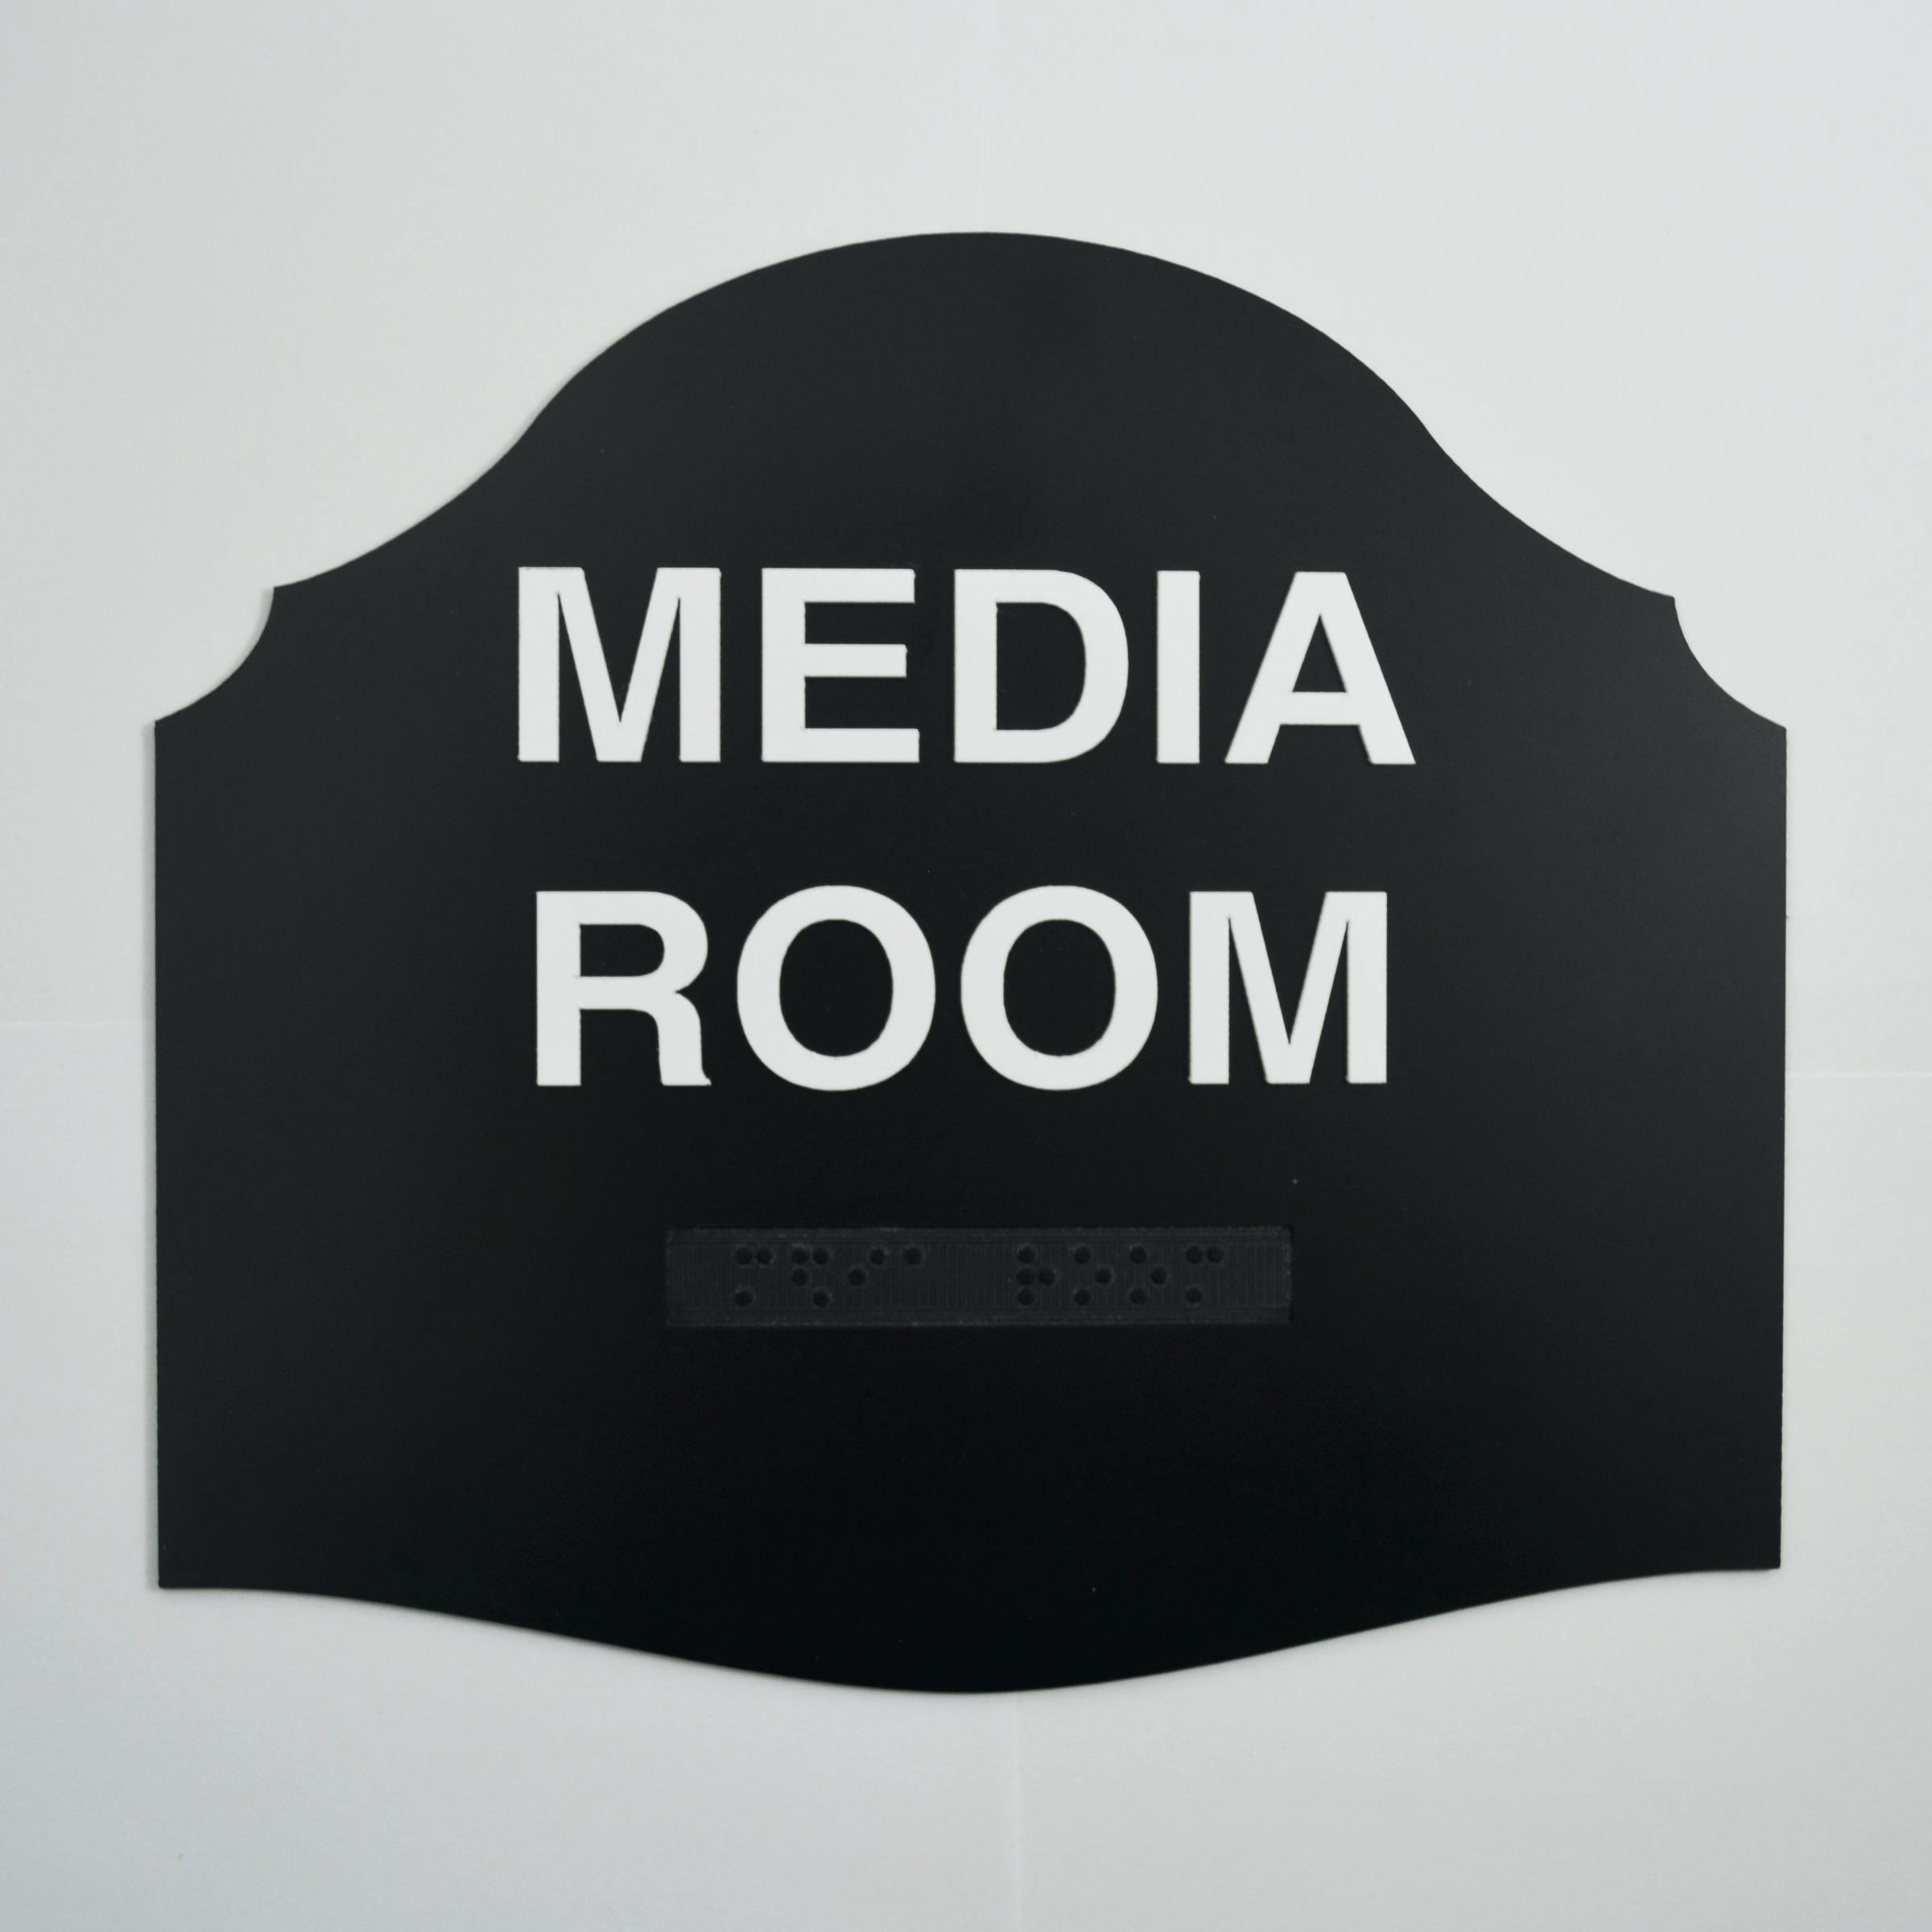 Media Room Black Braille Sign